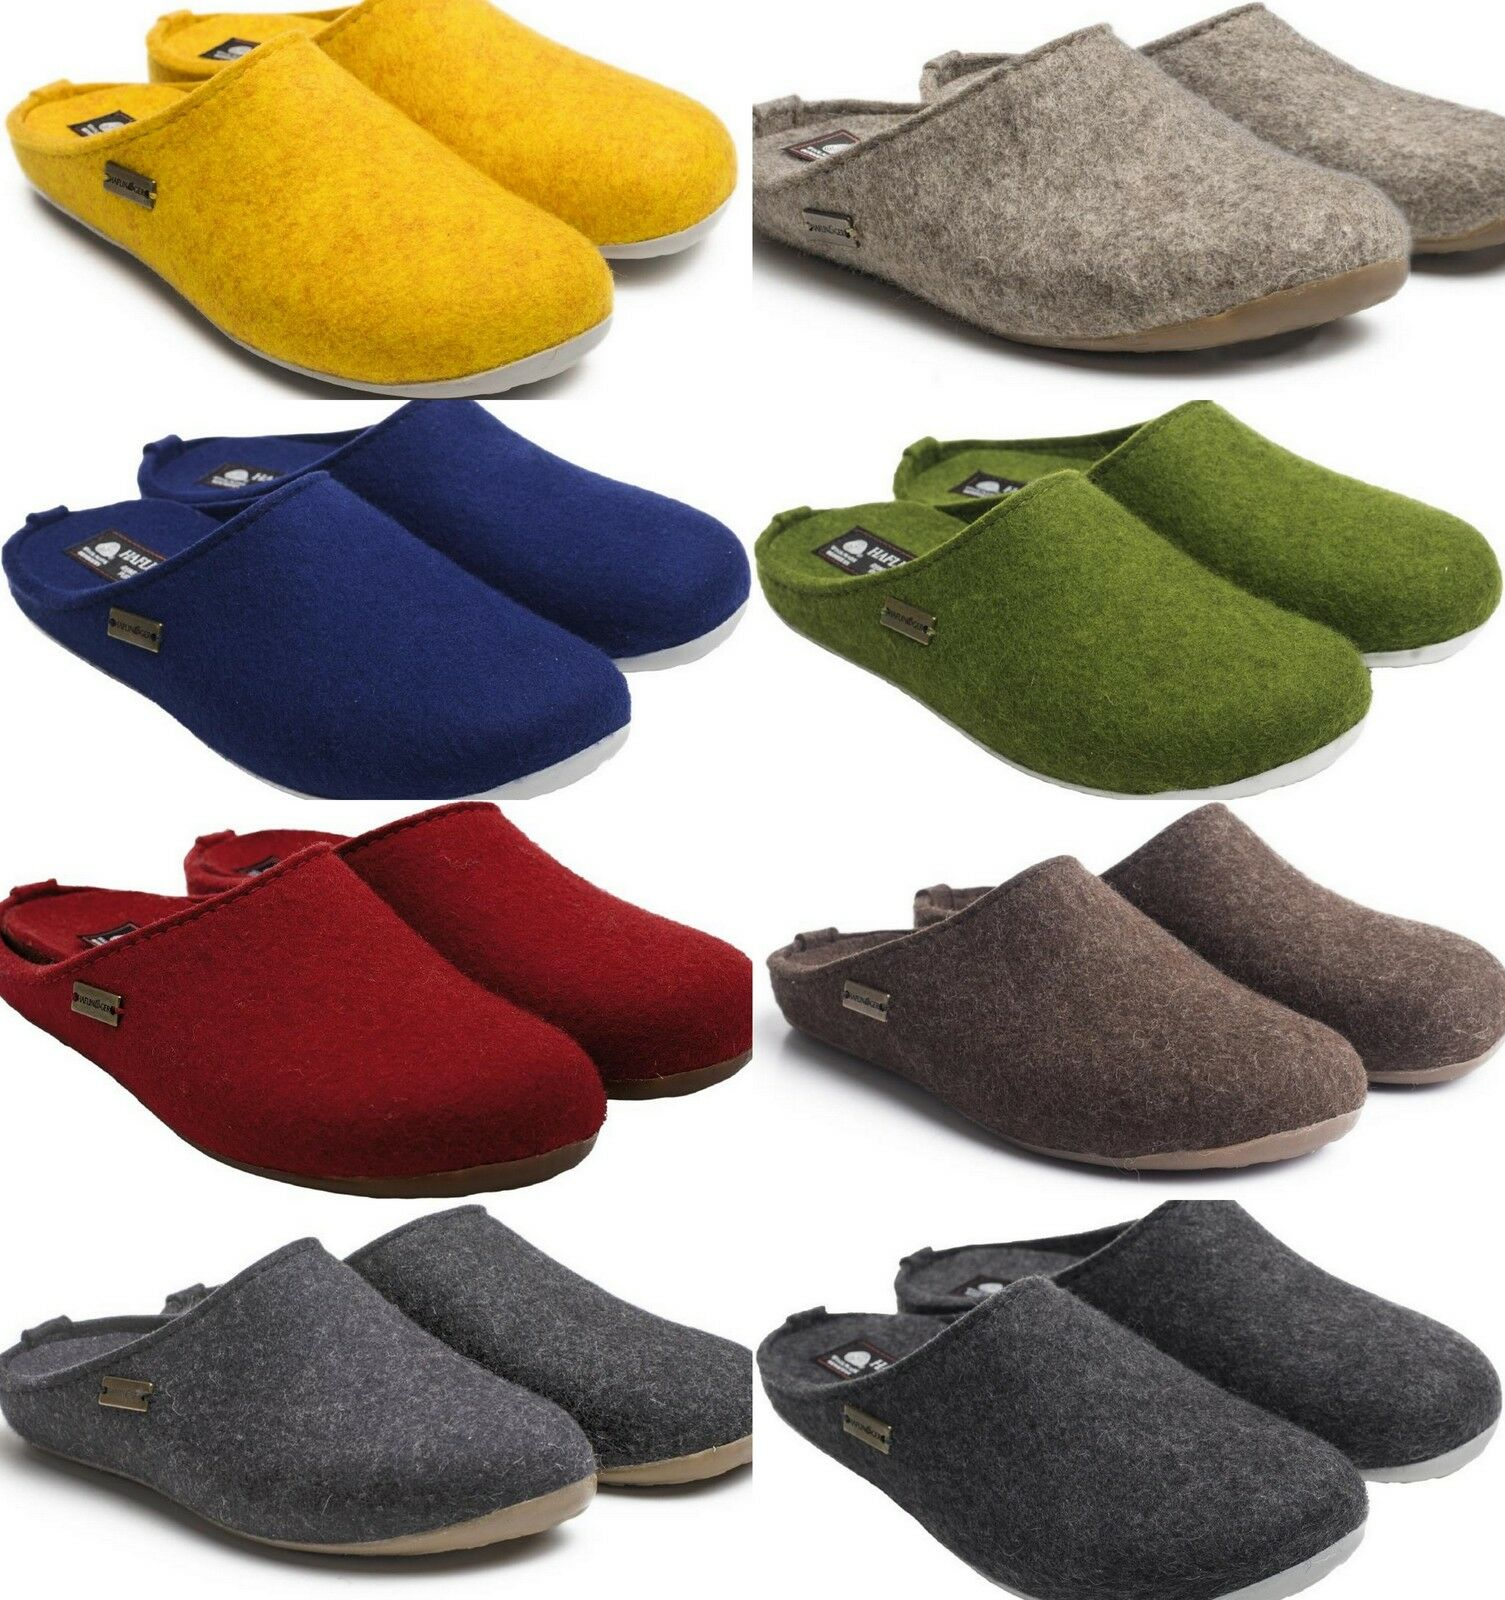 Haflinger Fundus Slippers Woman Man Unisex High Quality Grey bluee Red Green